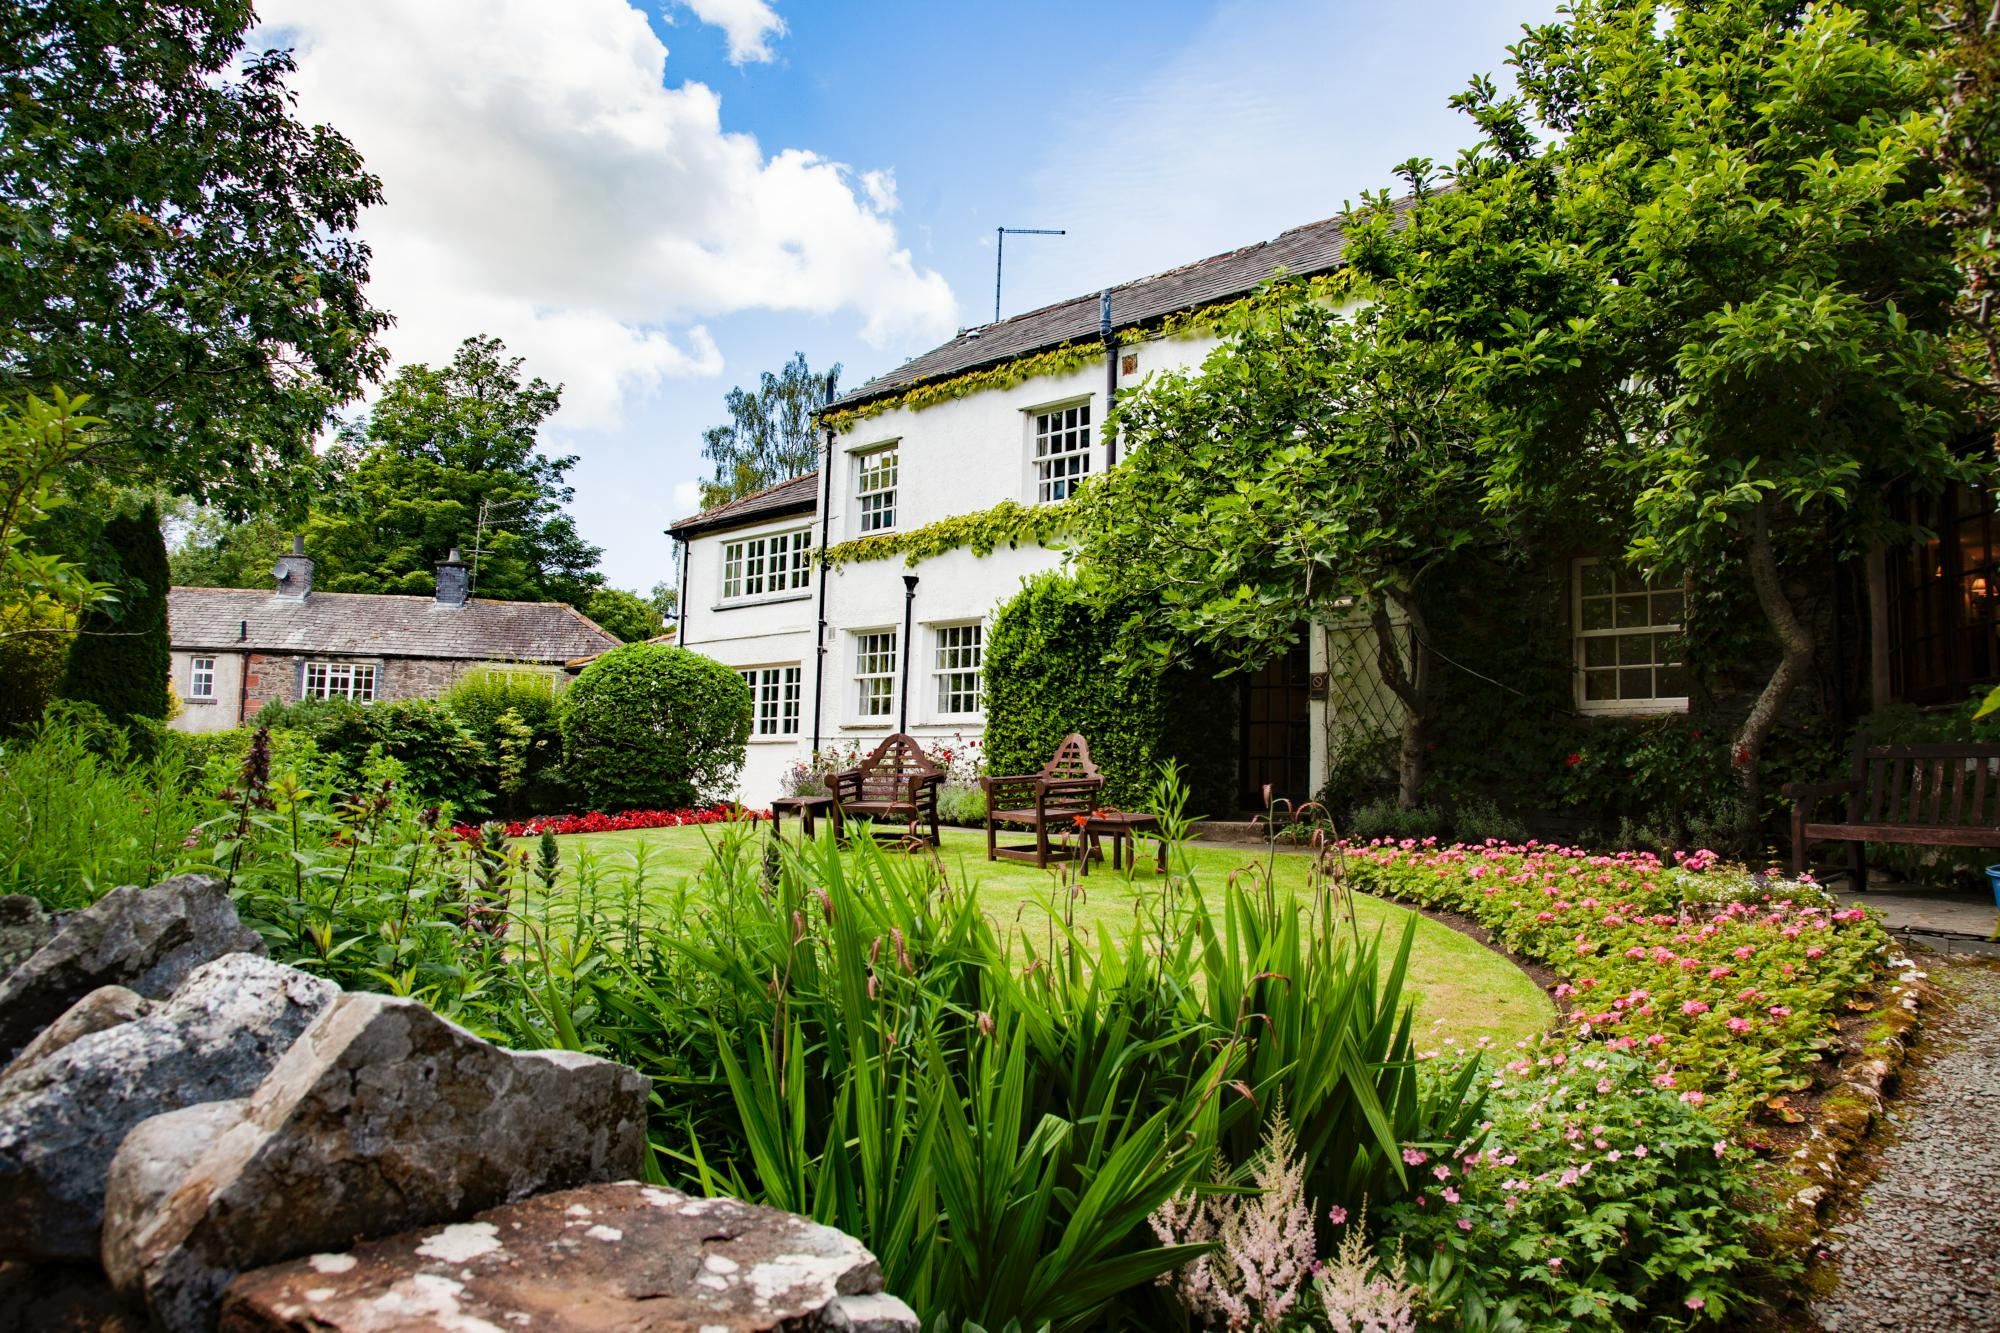 Hotels in Cockermouth holidays at Cool Places